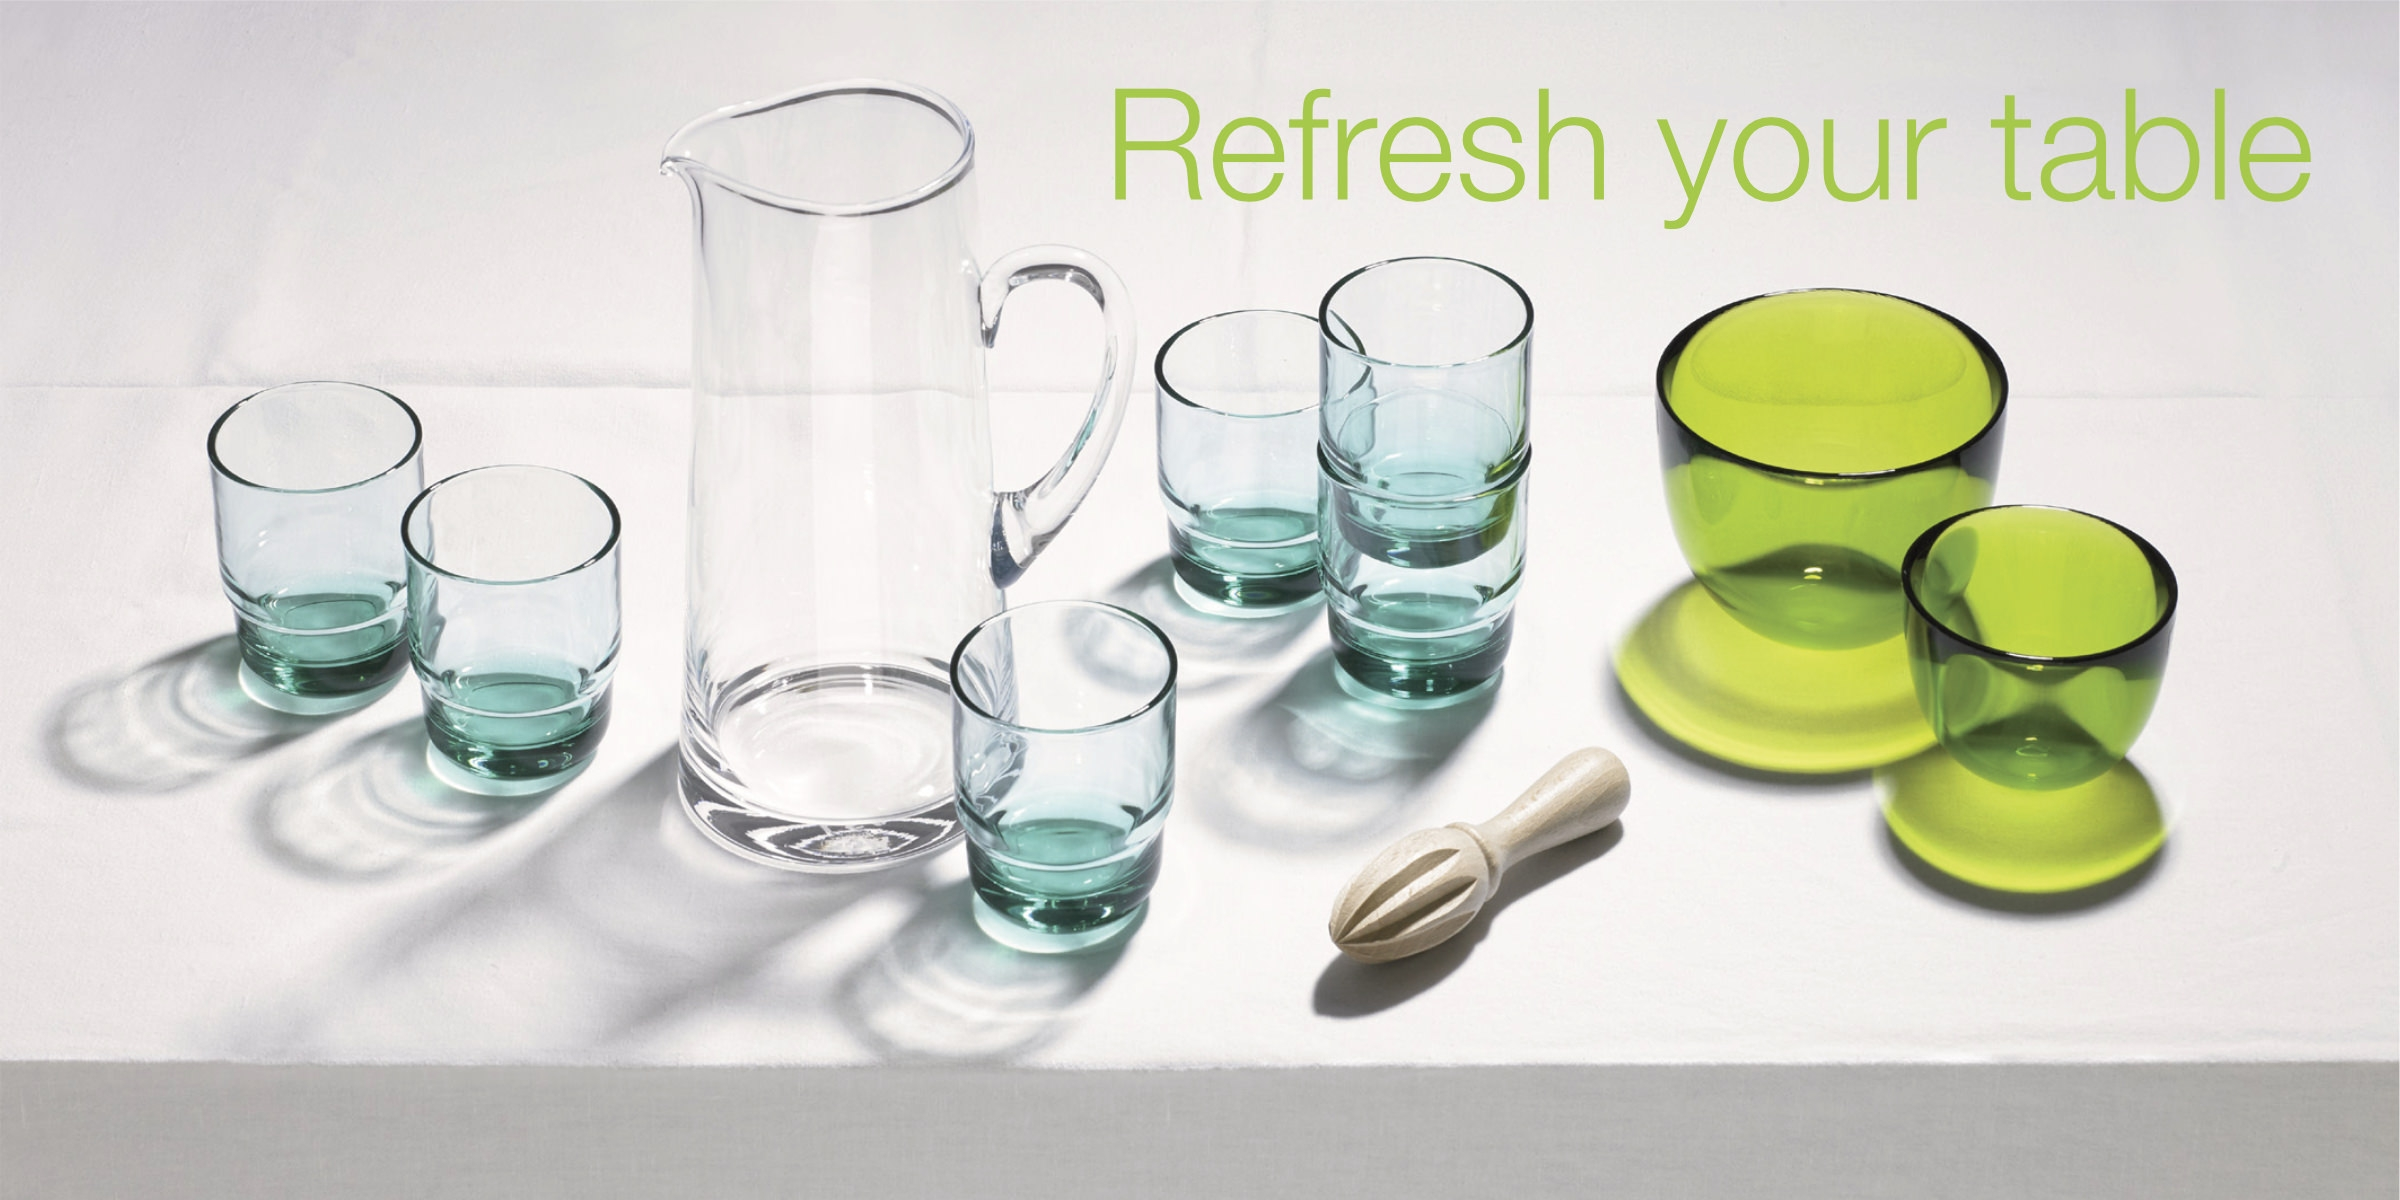 Refresh your table